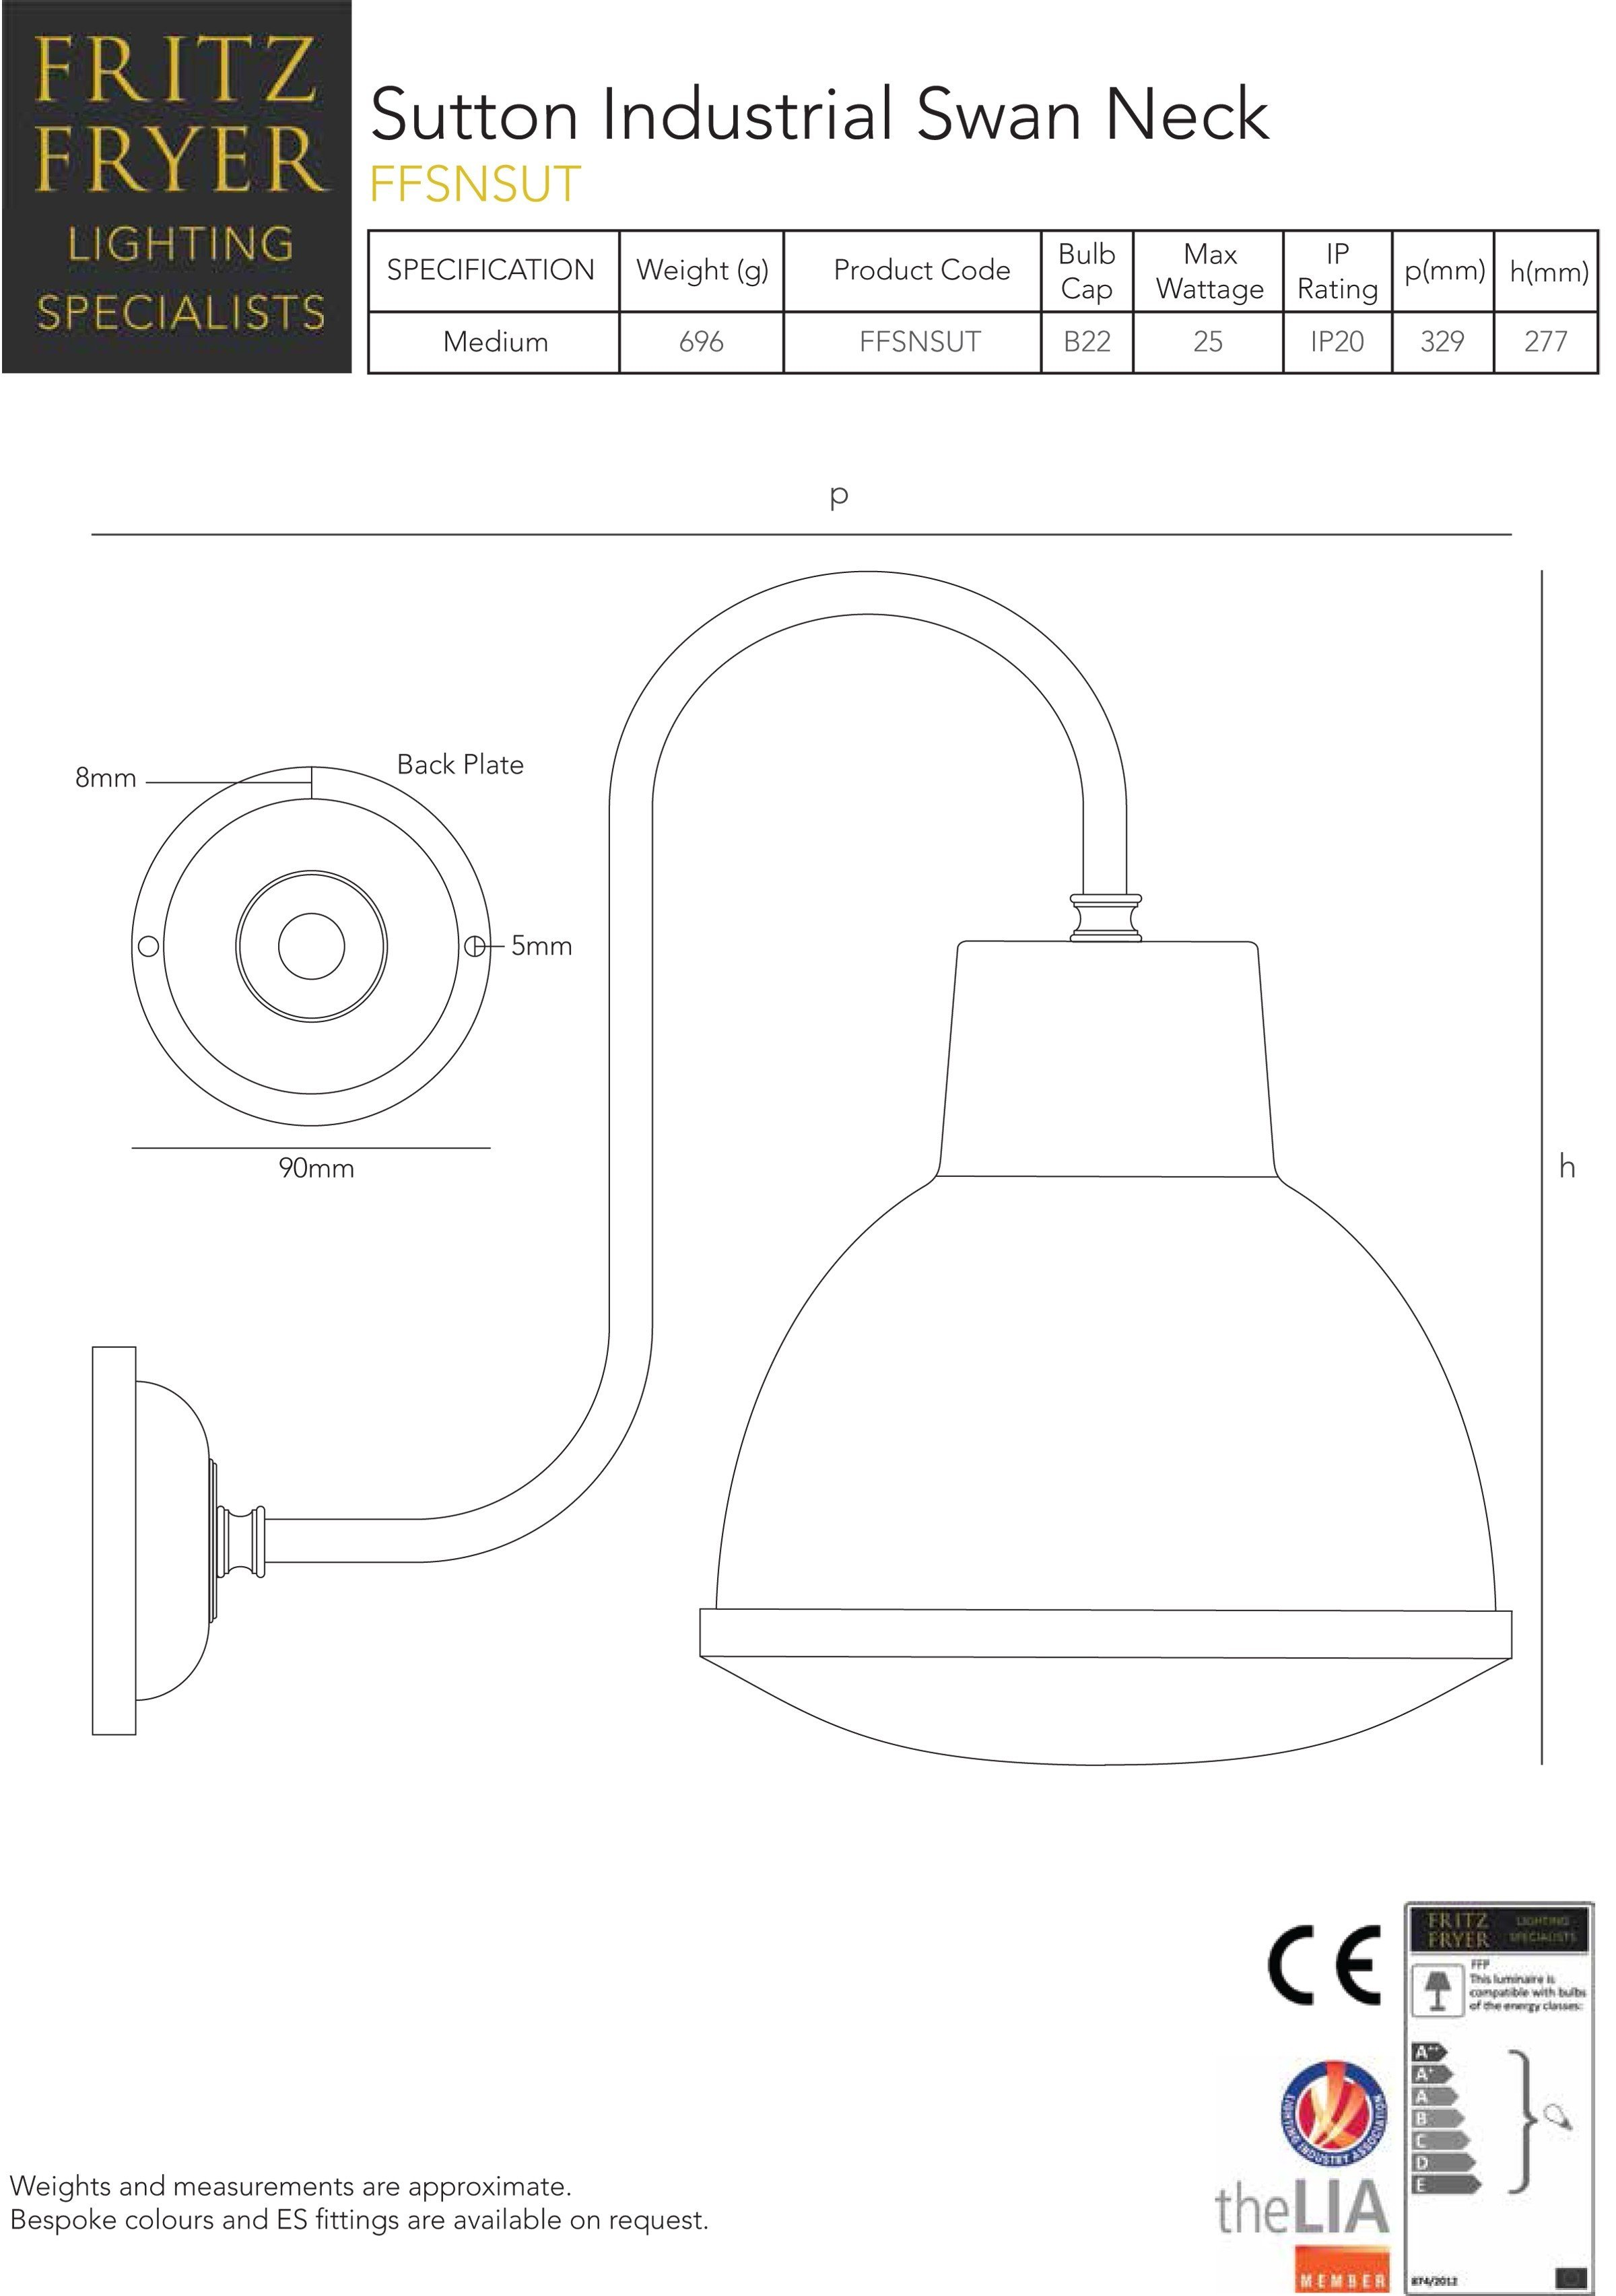 designer-lighting-sutton-industrial-swan-neck-technical-data-sheet-fritz-fryer